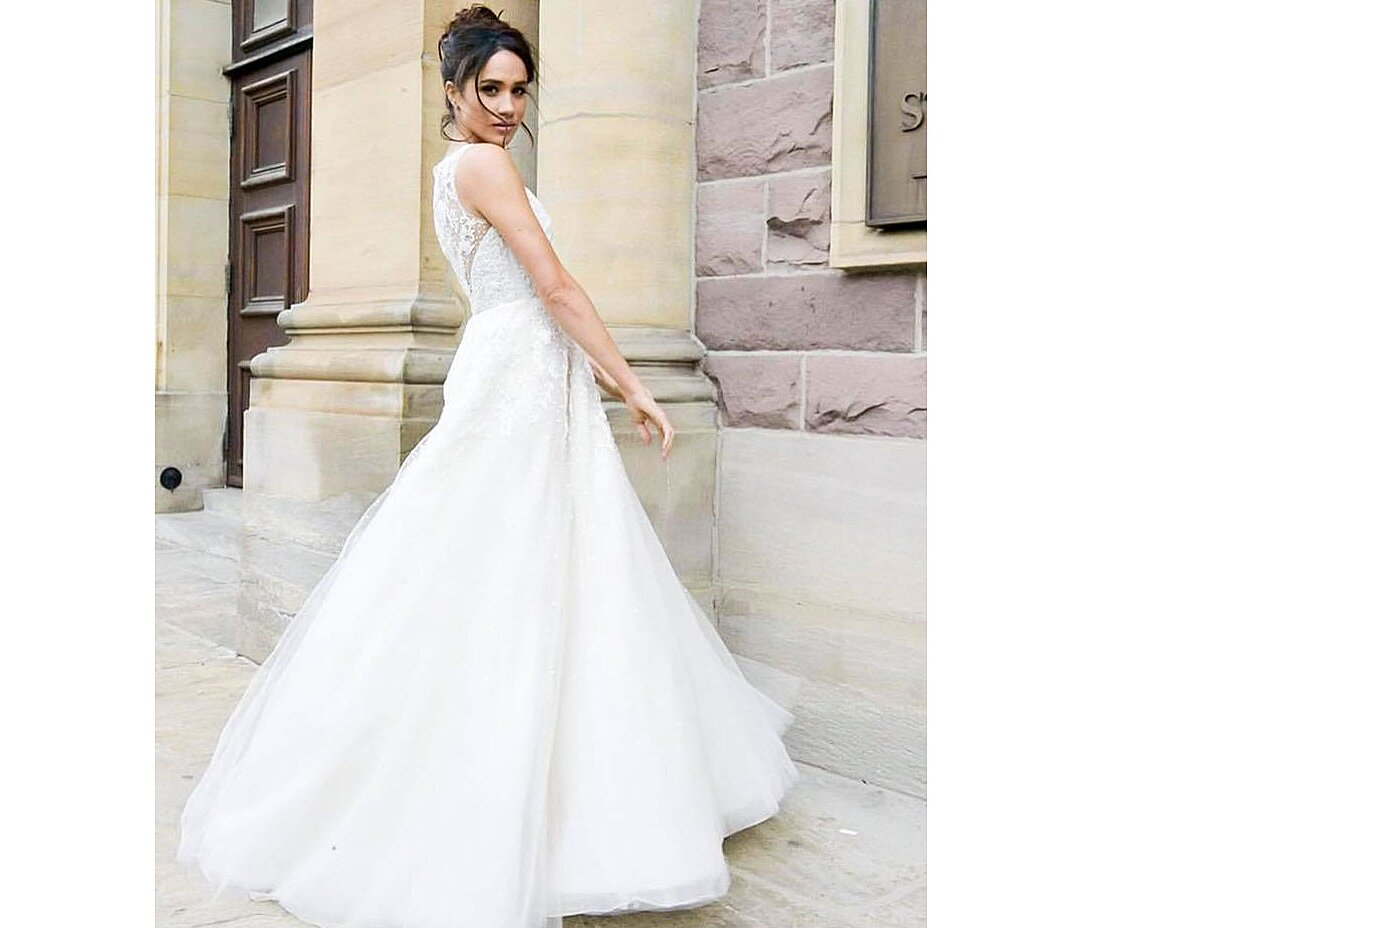 meghan markle wedding dress style will she wear anne barge bridal southern living meghan markle wedding dress style will